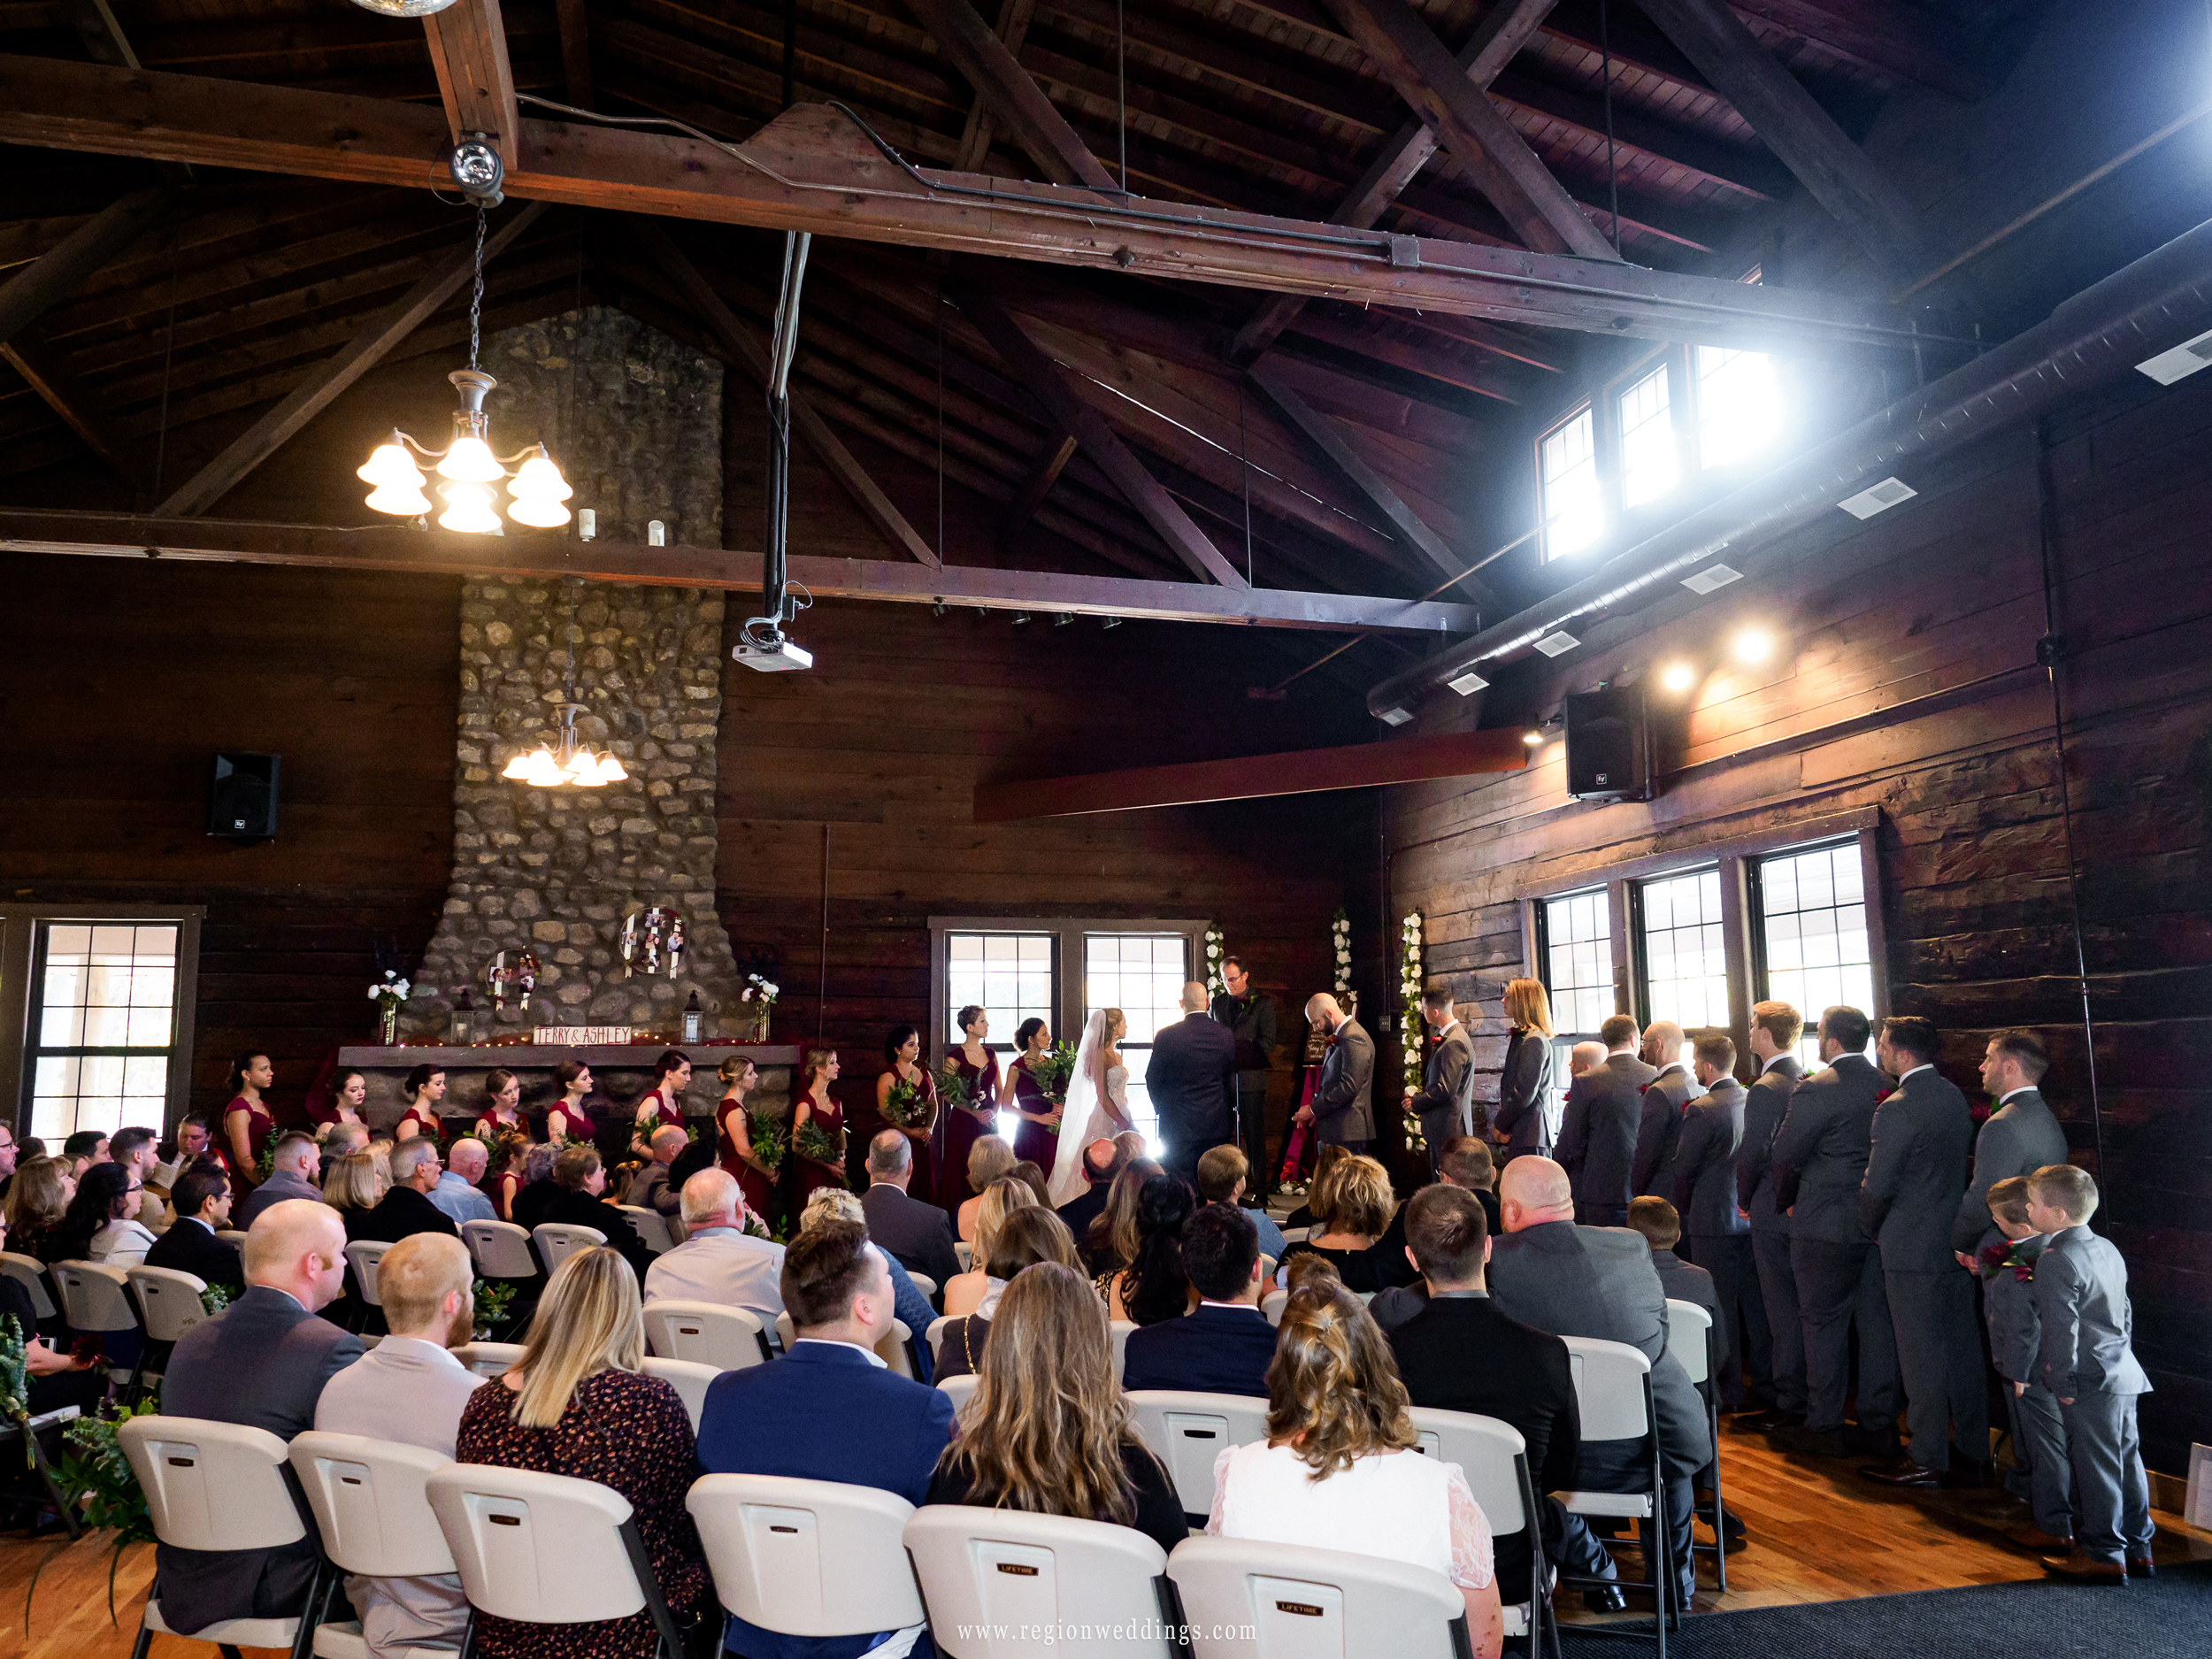 Wedding ceremony at Kreuger Memorial Hall.